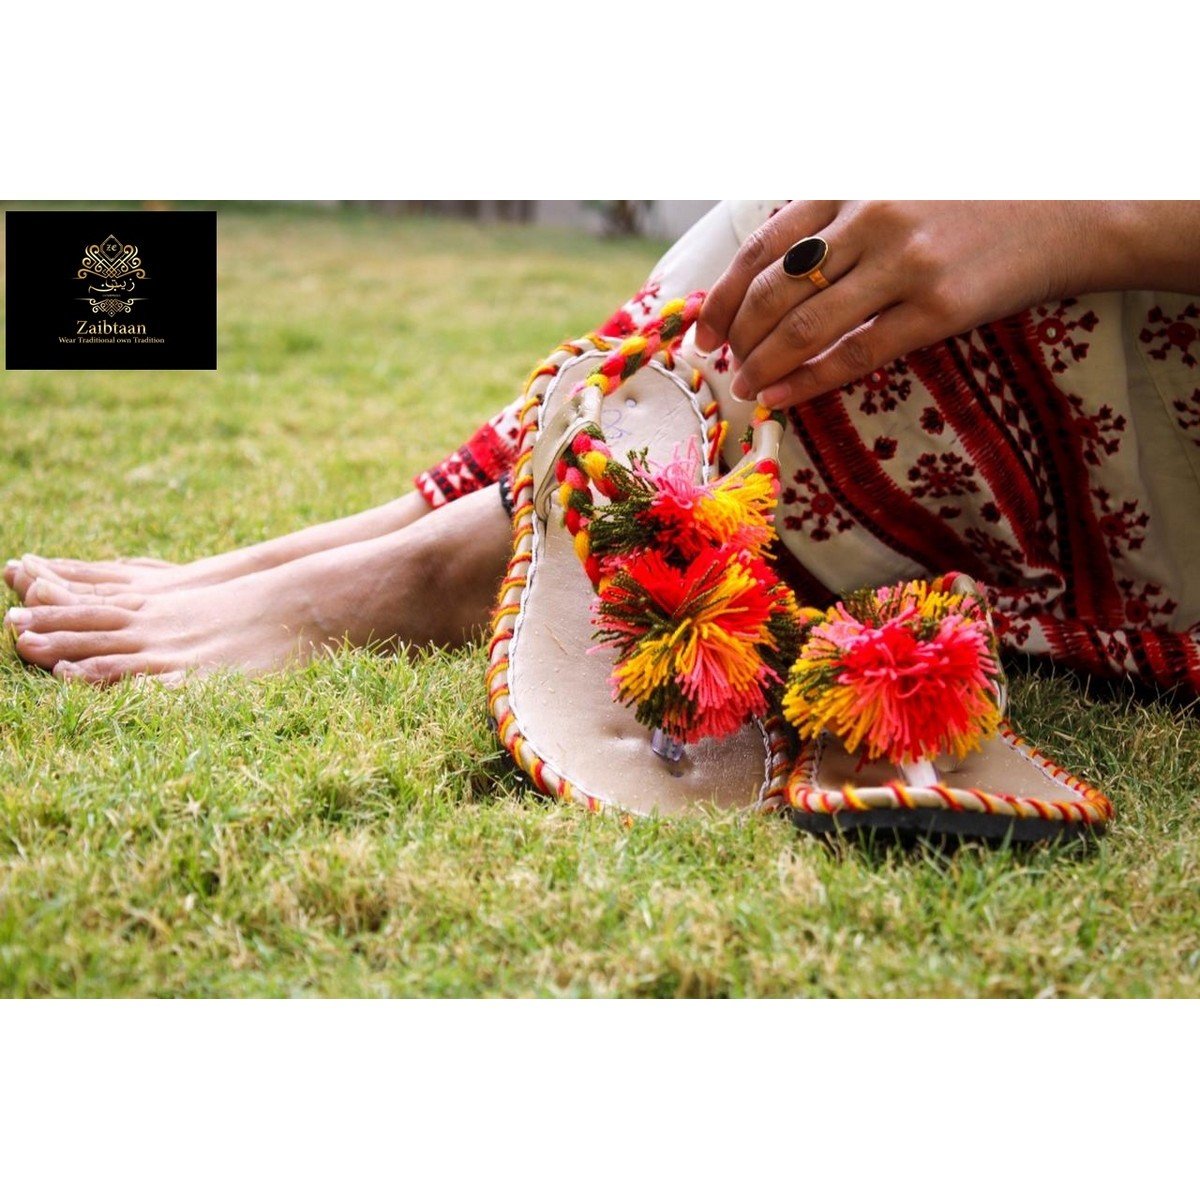 Zaibtaan - Traditional Hand Made Balochi Sandal for Women - Toe Thong Sandals for women - Flip Flop Sandals - Ladies shoes - Multicolor